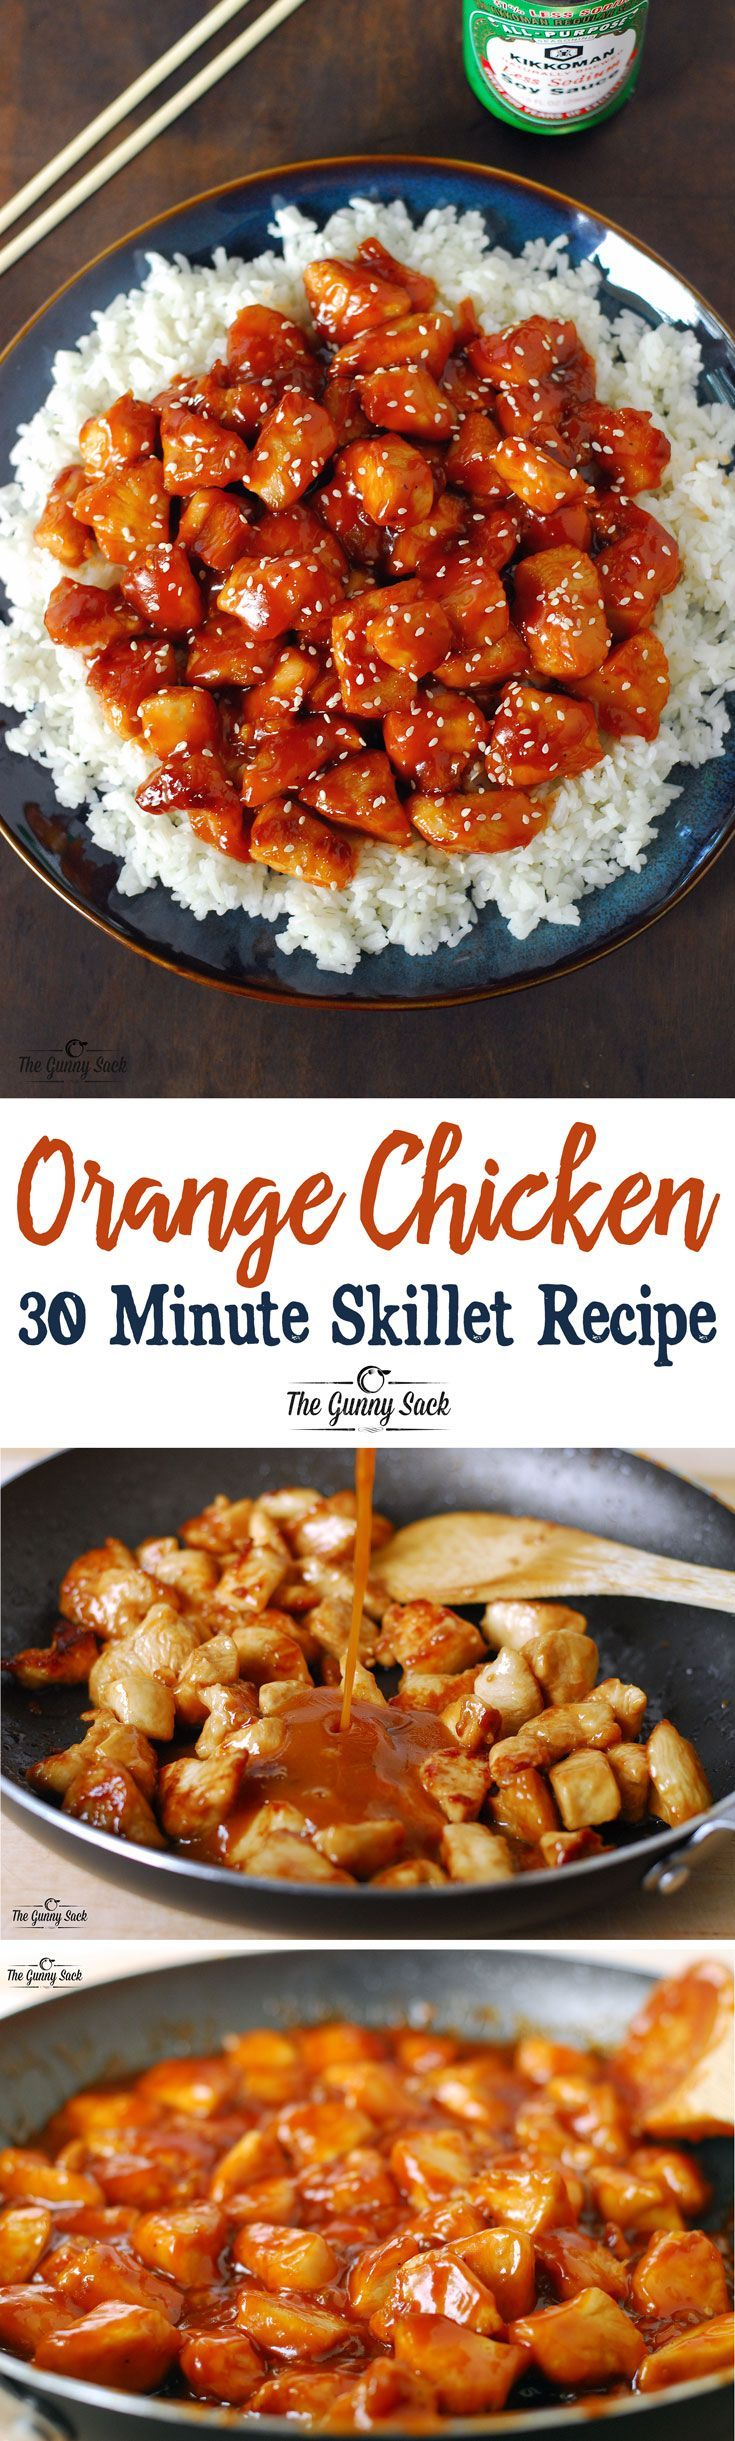 9187 best chinese food recipes images on pinterest dinner ideas orange chicken 30 minute skillet recipe a easy dinner idea that is family friendly forumfinder Image collections